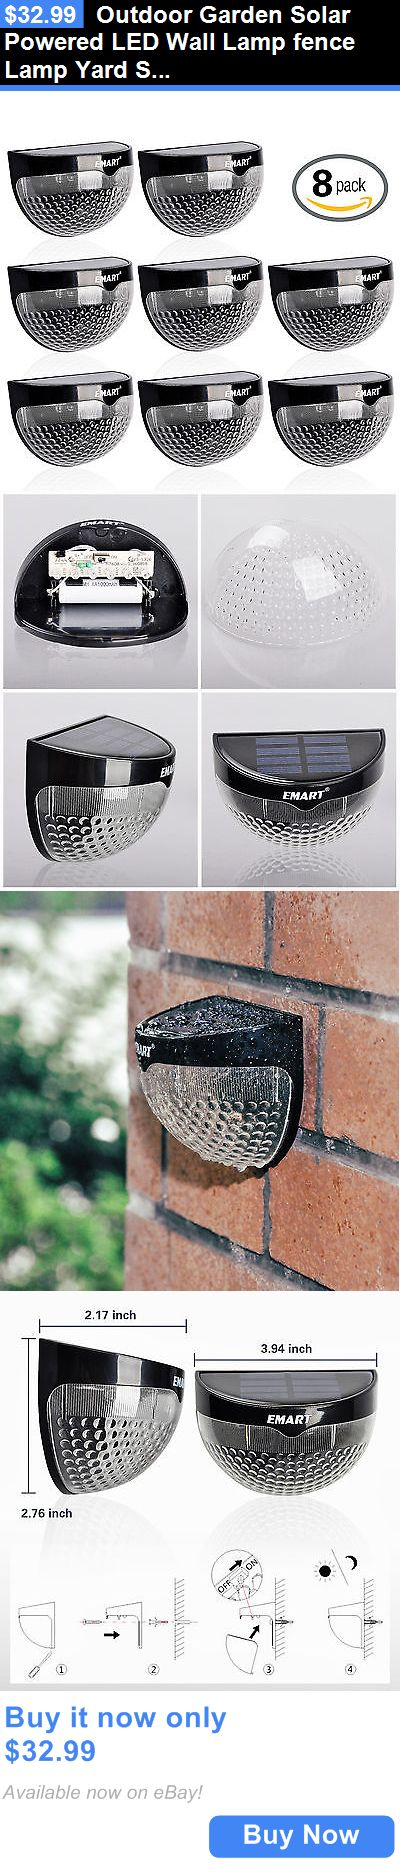 farm and garden: Outdoor Garden Solar Powered Led Wall Lamp Fence Lamp Yard Solar Light --8 Pack BUY IT NOW ONLY: $32.99